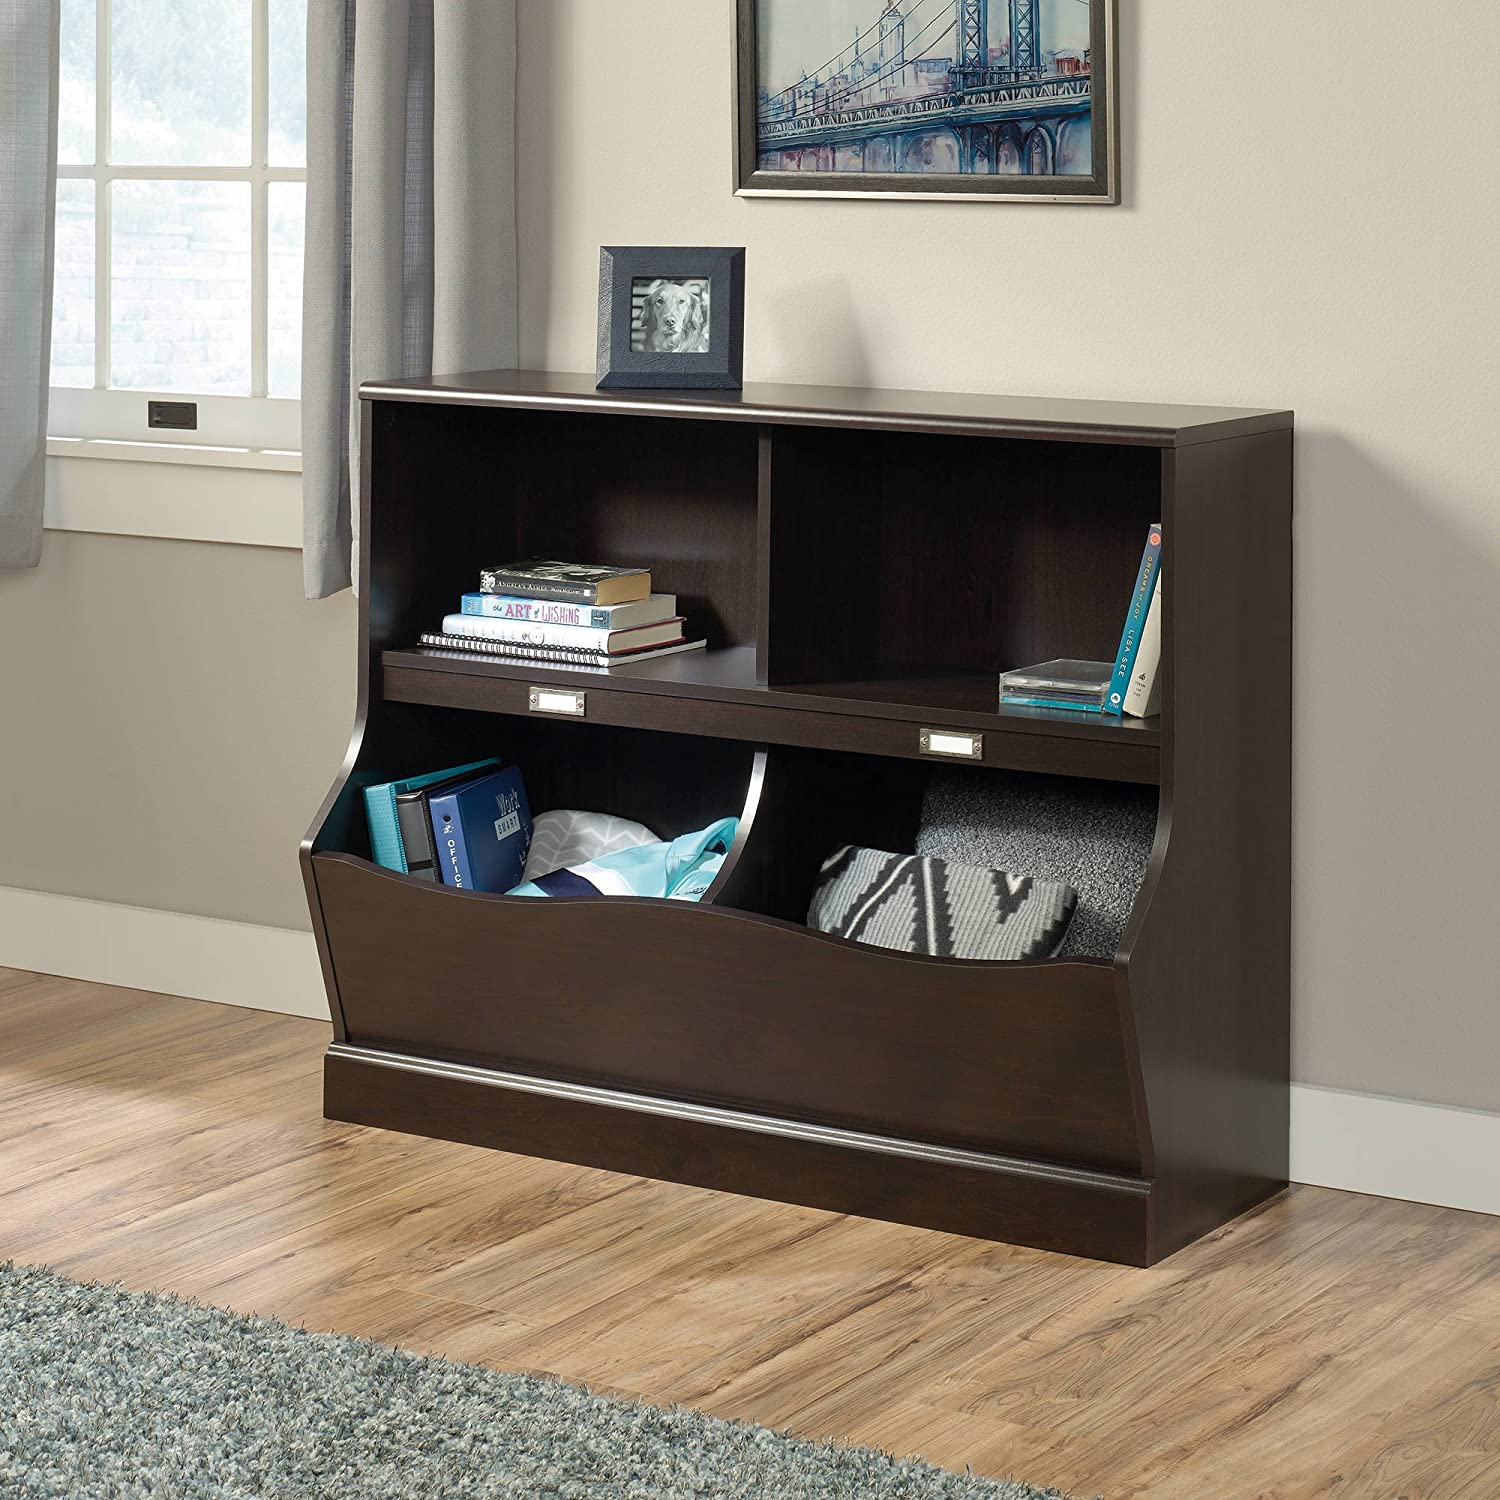 Sauder Storybook Bookcase - Jamocha Wood Finish